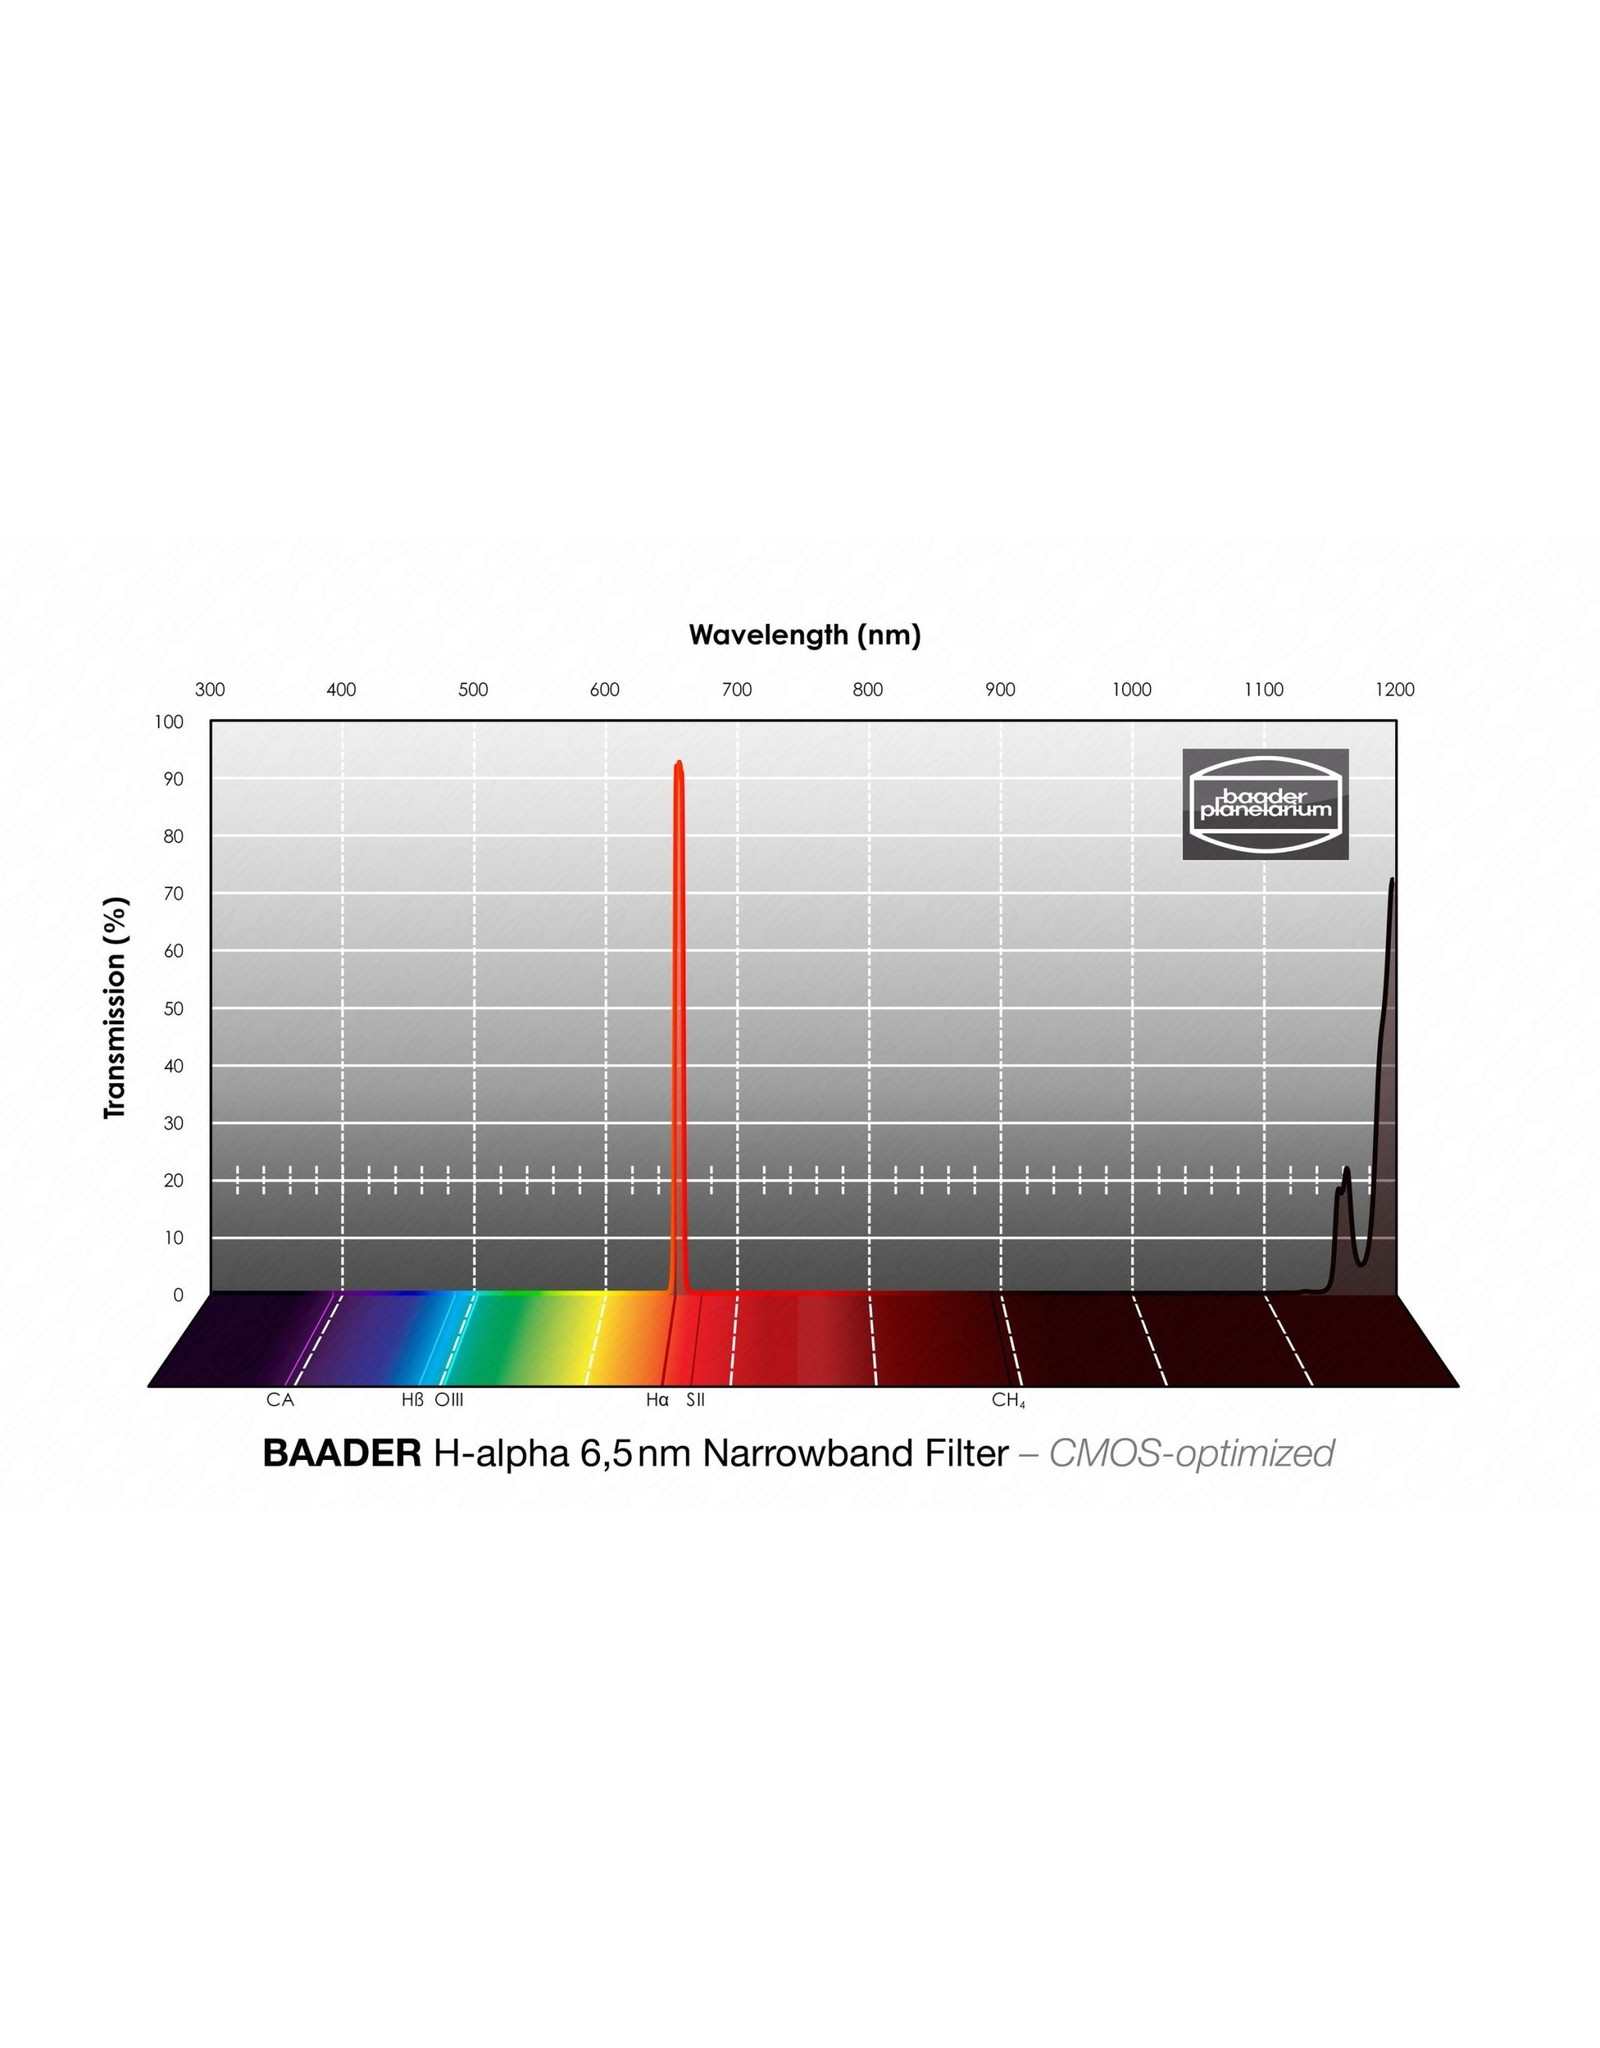 Baader Planetarium Baader 6.5nm Narrowband Oxygen-III Filters – CMOS-optimized (Specify Size)